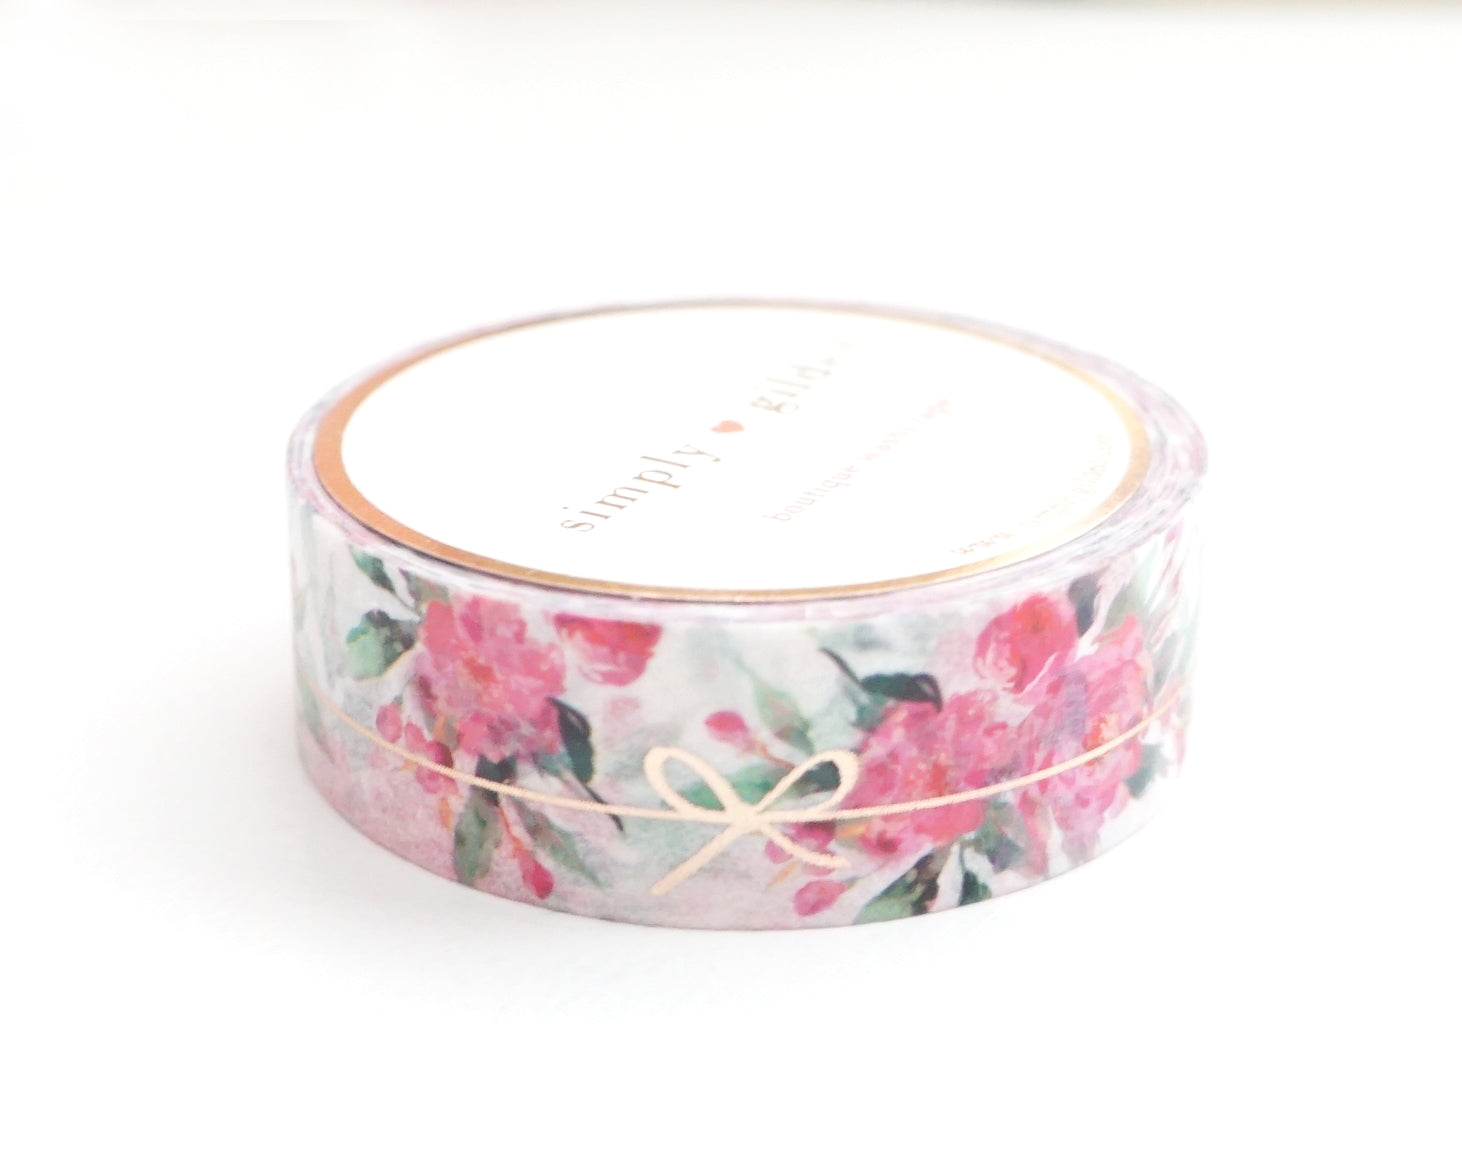 WASHI TAPE 15mm - White Floral SIMPLE BOW LINE + ROSE gold foil (January 10 Release)